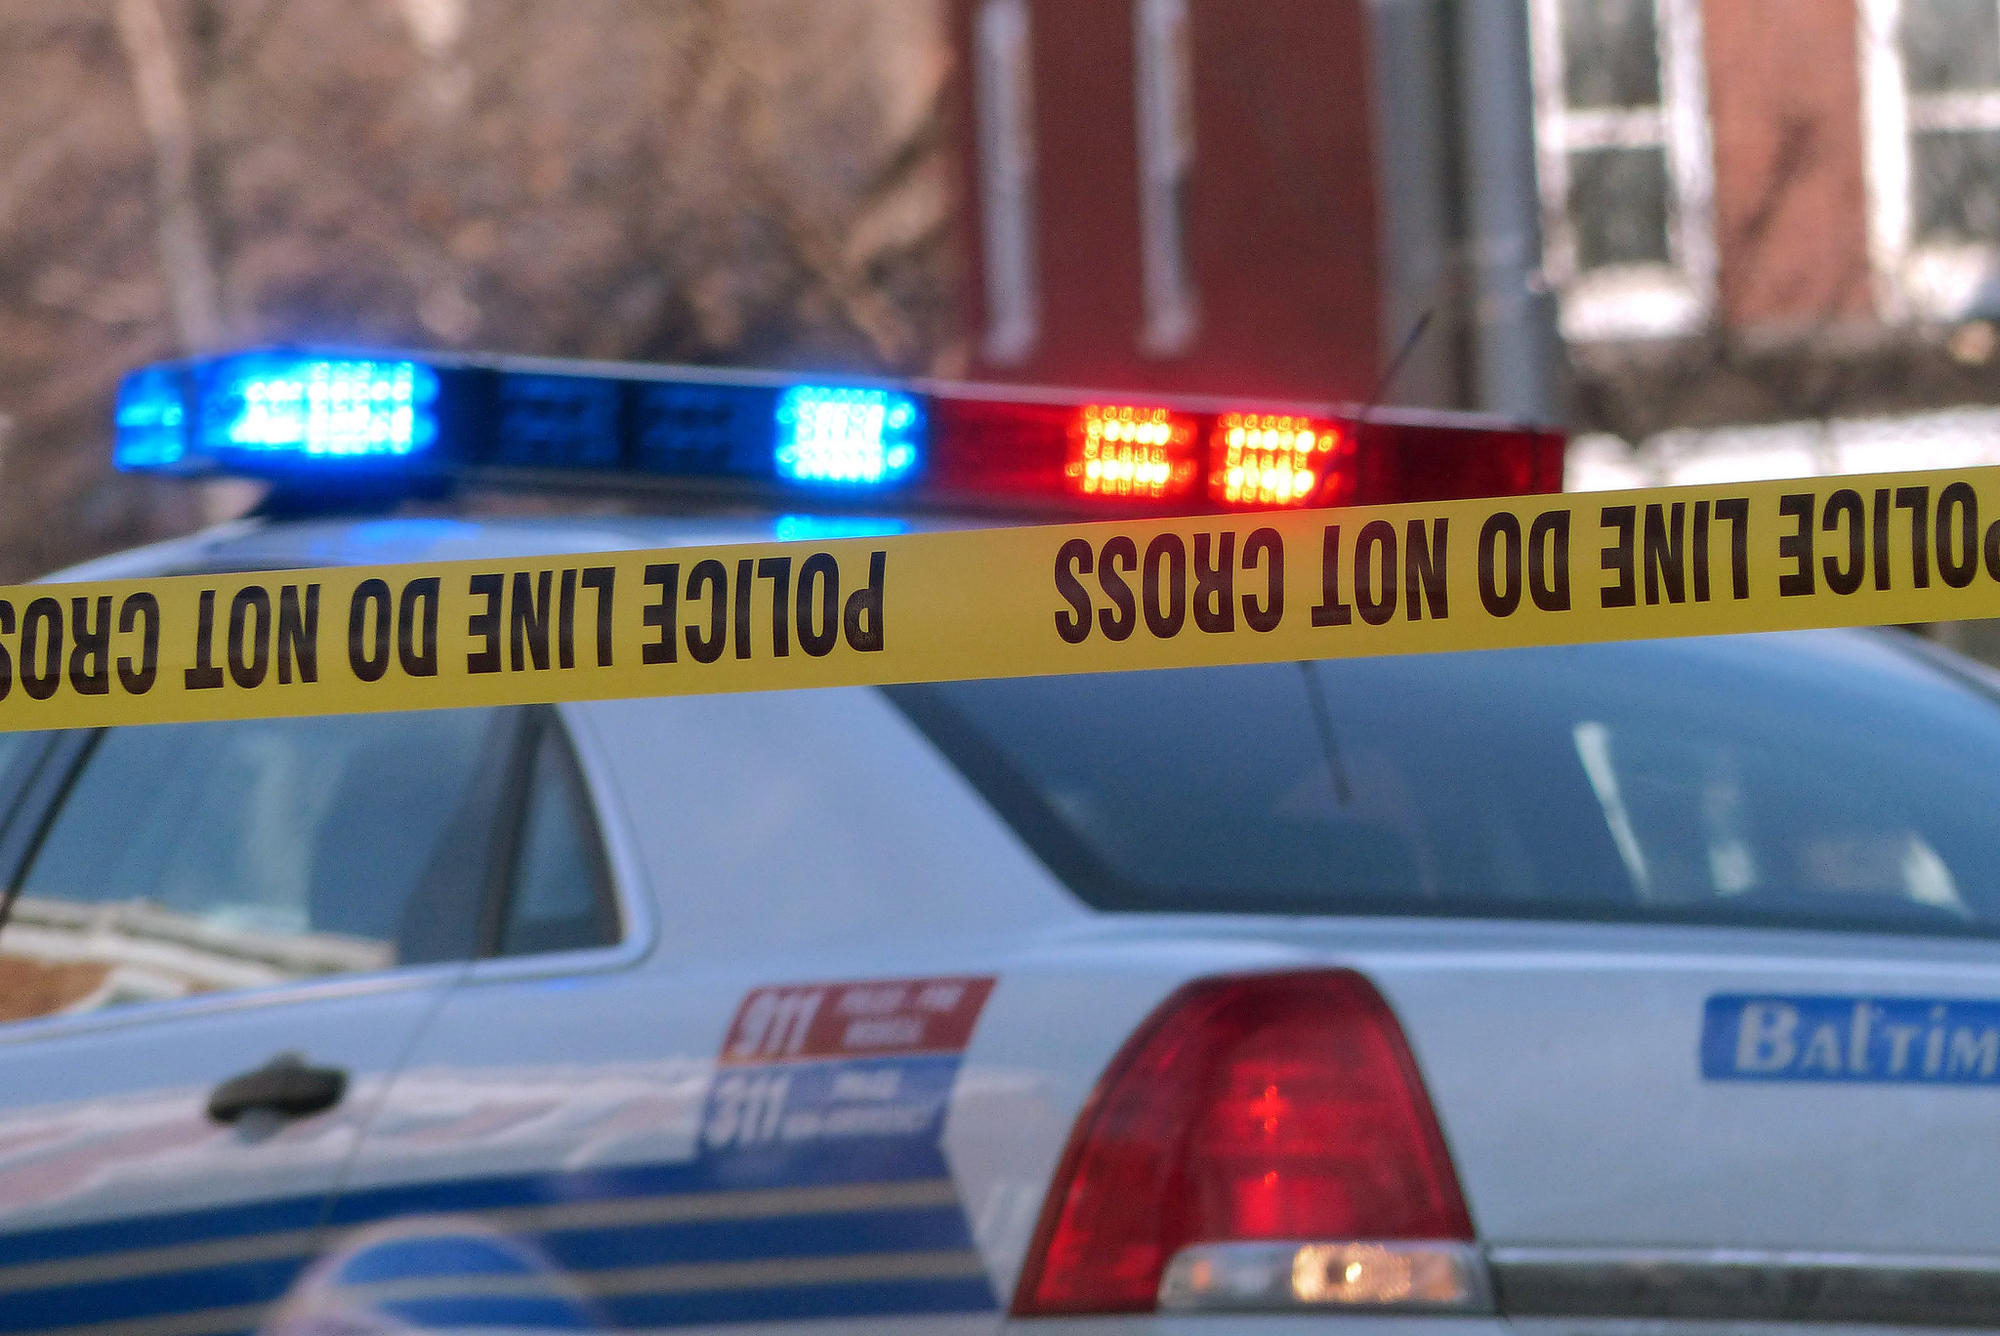 Baltimore police: Man wounded in shooting a block away from City Hall